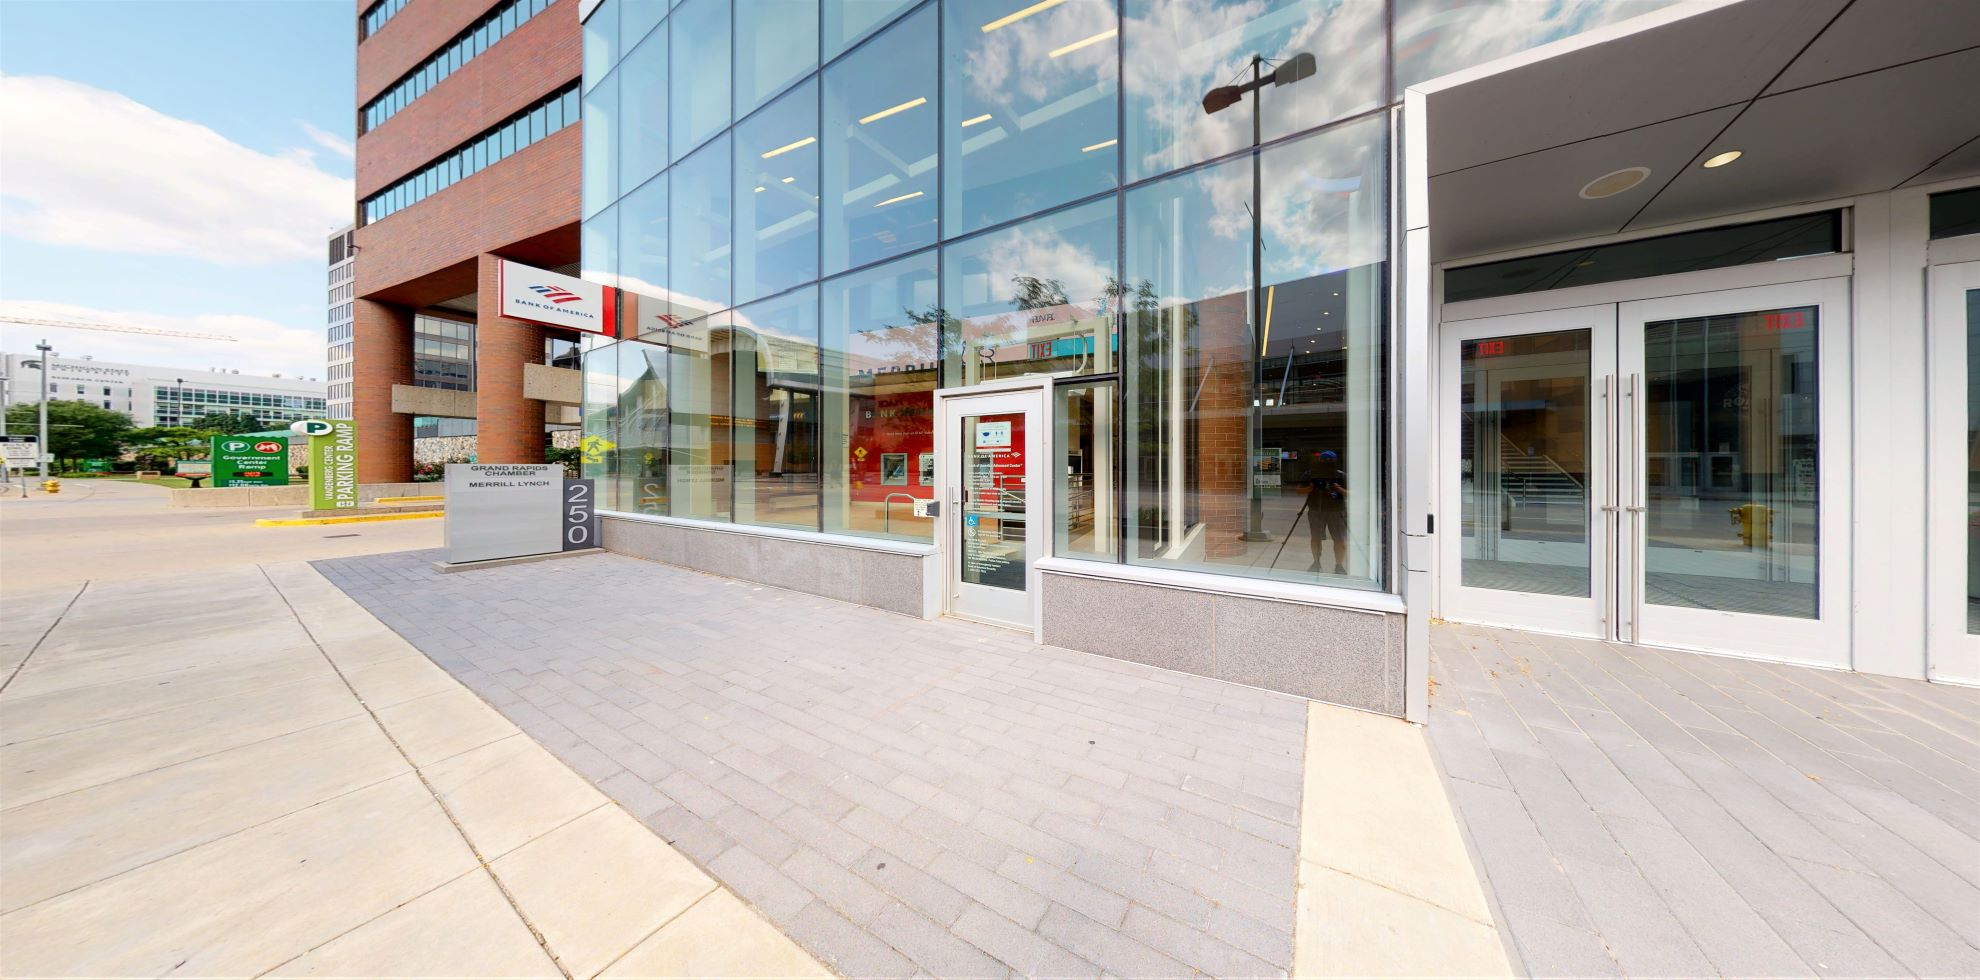 Bank of America Advanced Center with walk-up ATM | 250 Monroe Ave NW, Grand Rapids, MI 49503